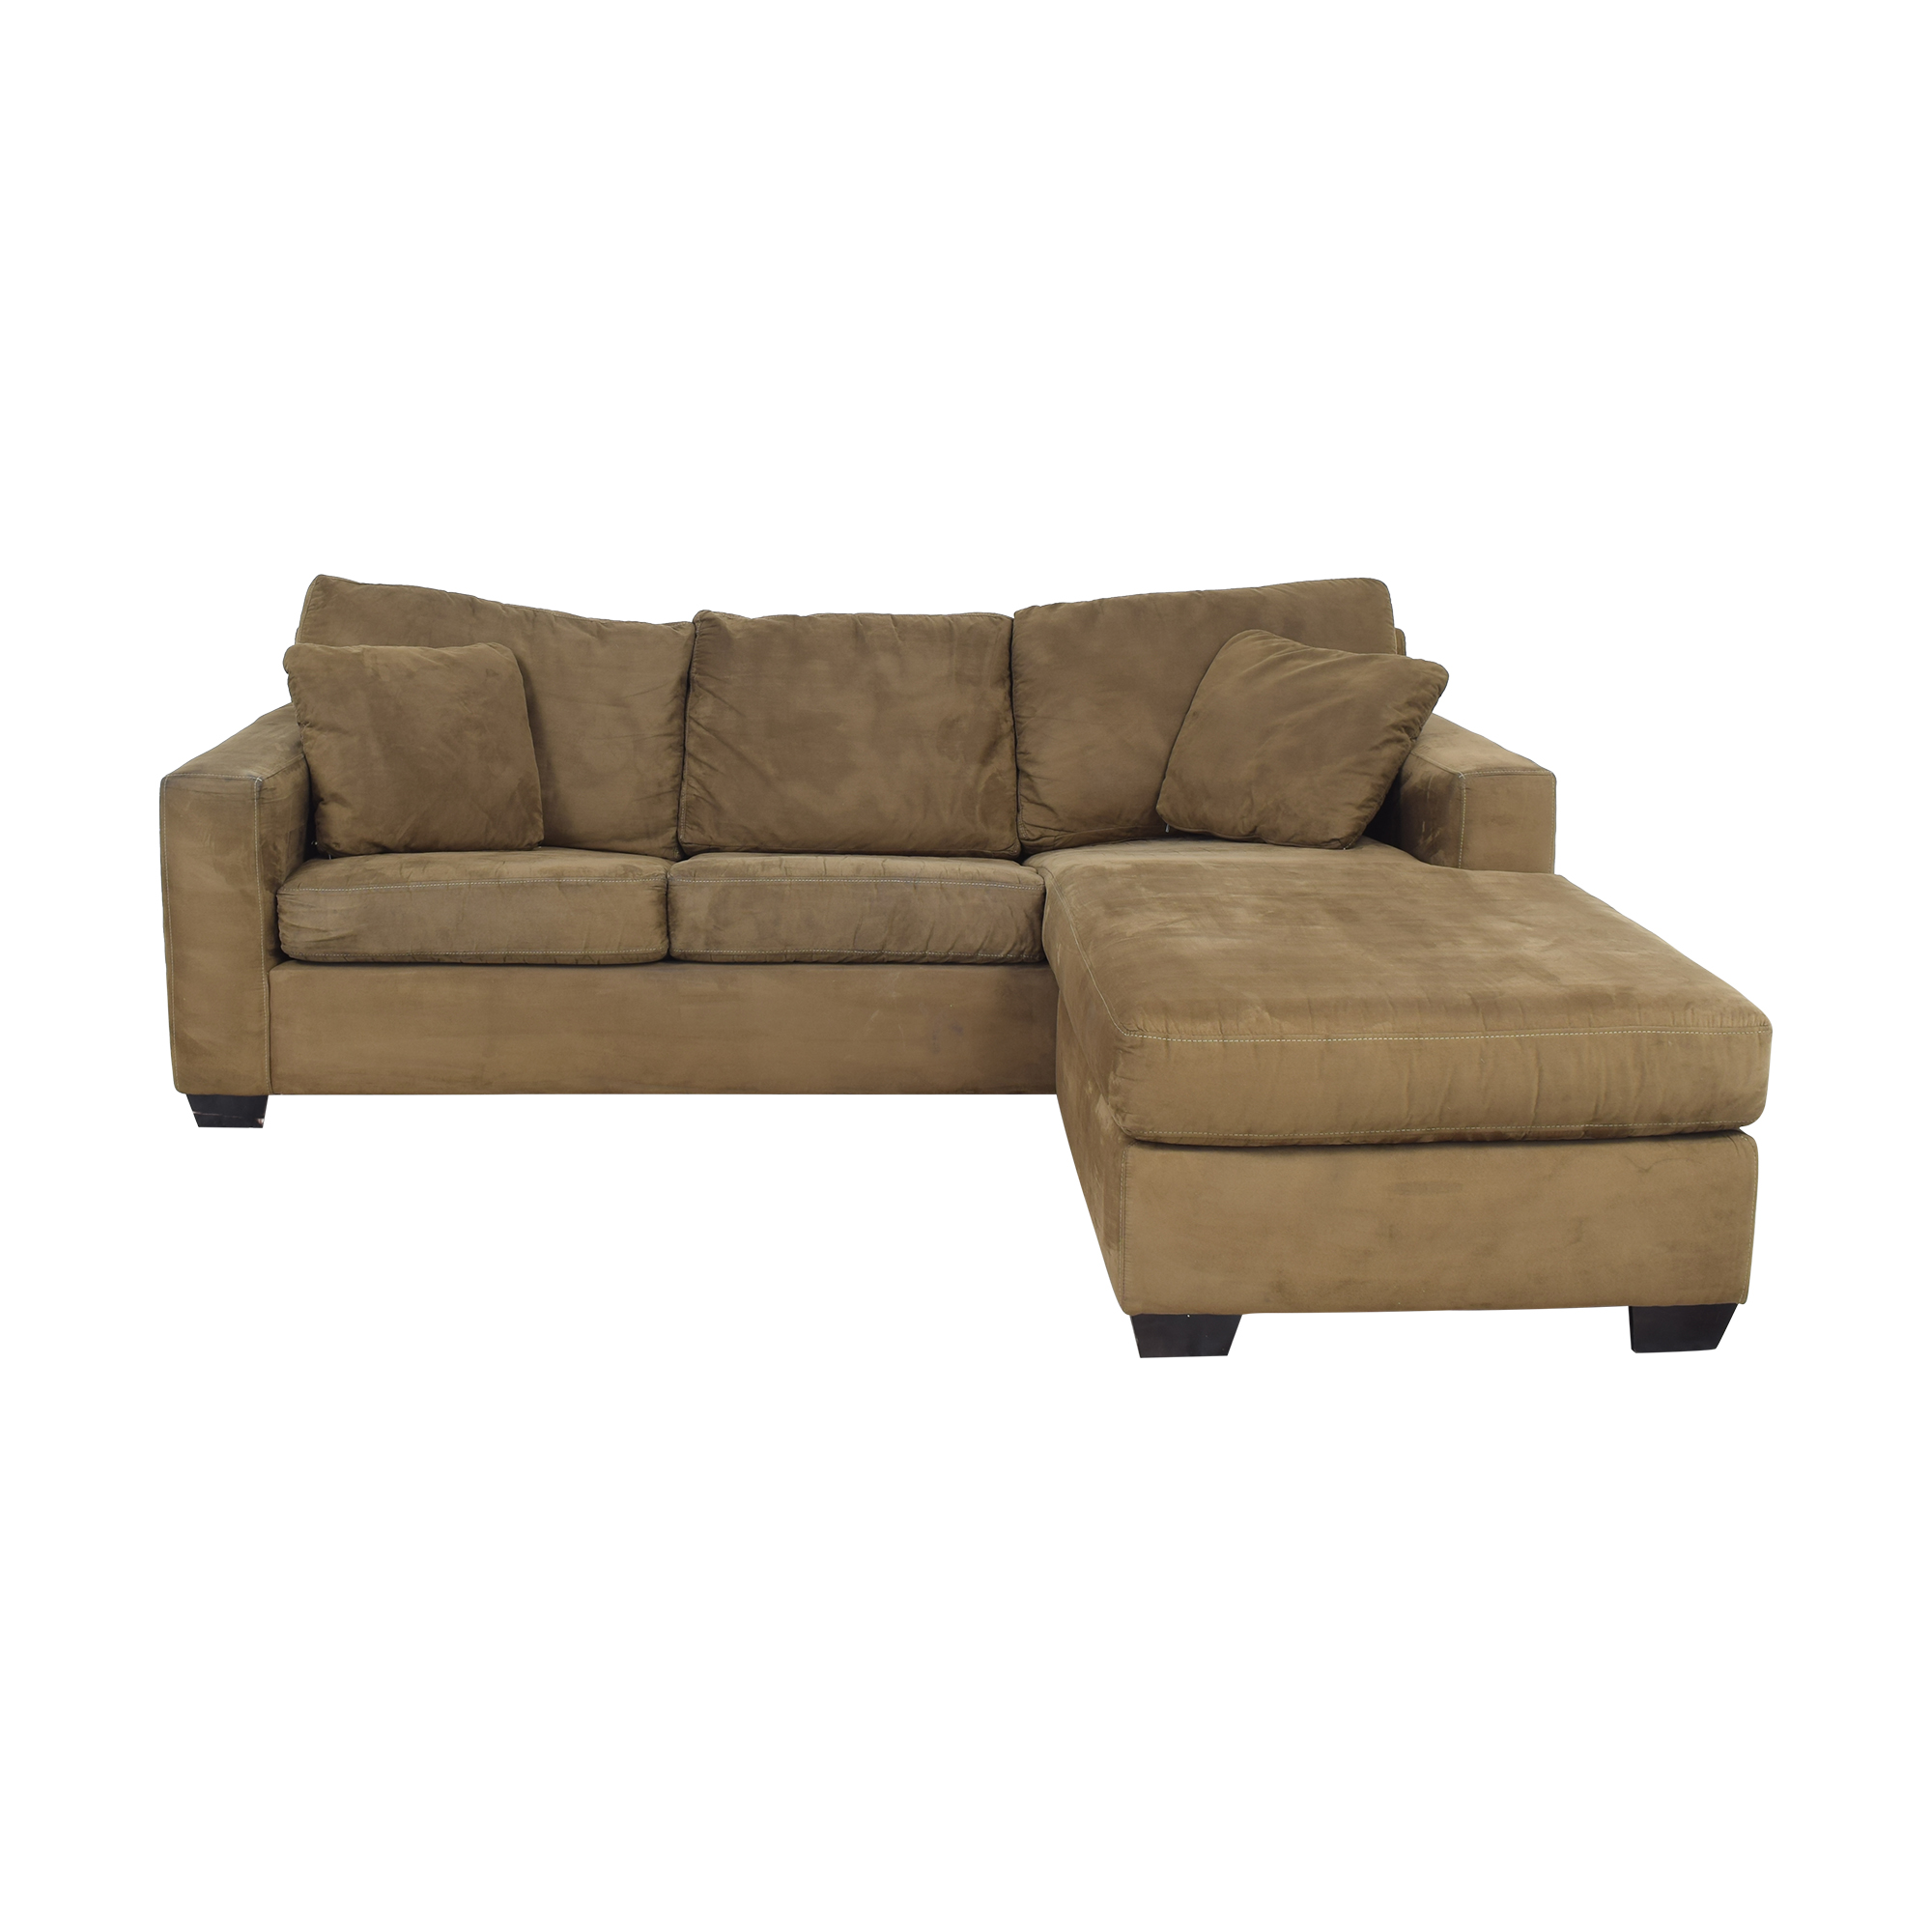 shop Macy's Macy's L-Shaped Sleeper Sectional Sofa online